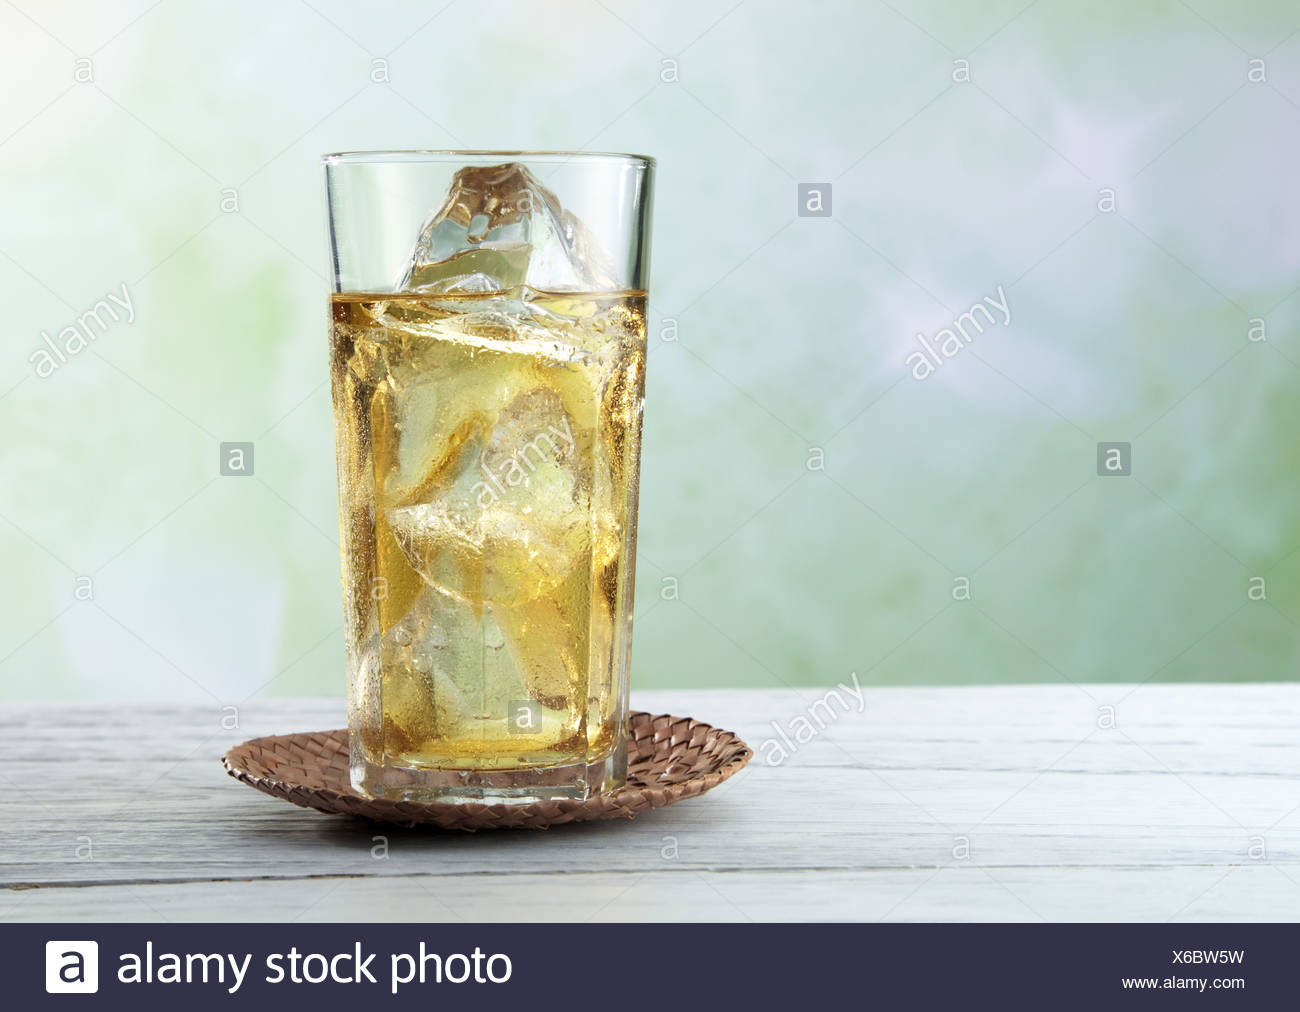 Color Blend High Resolution Stock Photography and Images   Alamy